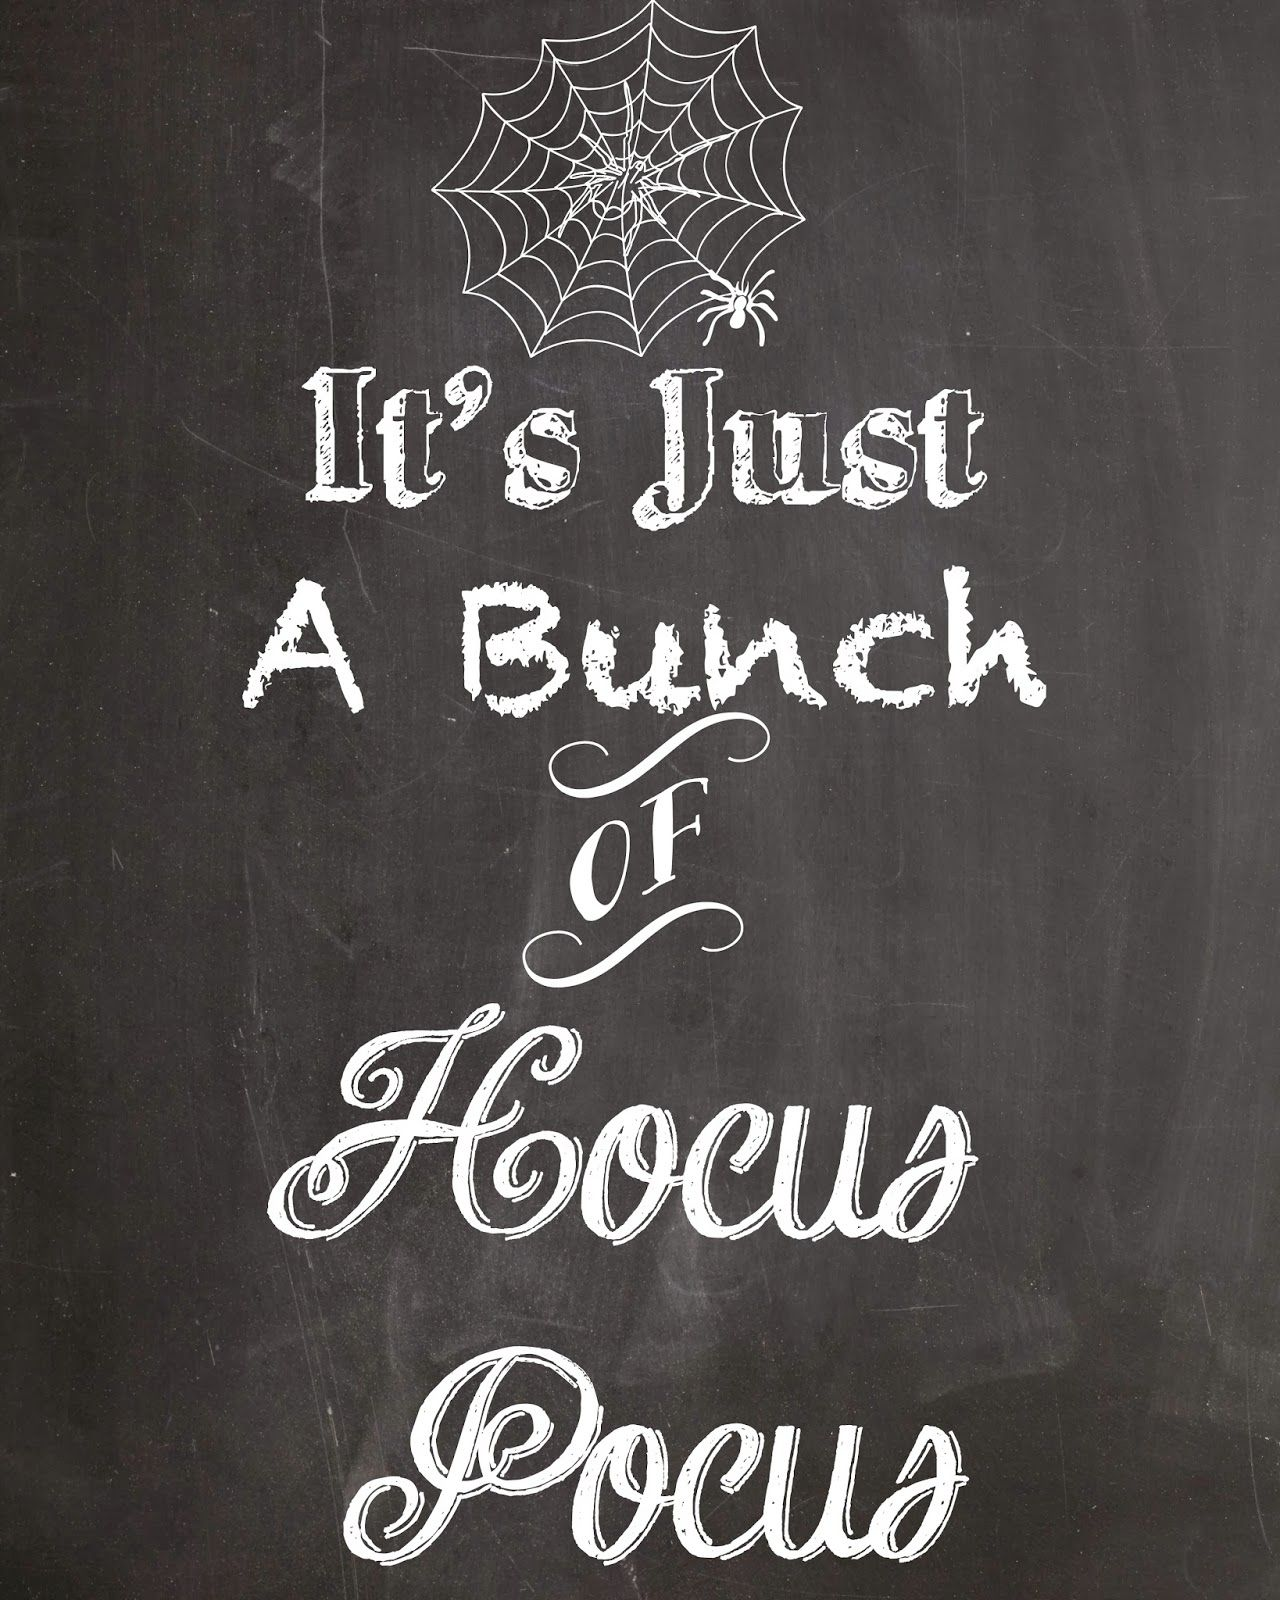 hocus pocus quotes | Posted by My Life as Whitney at 2:23 PM ...